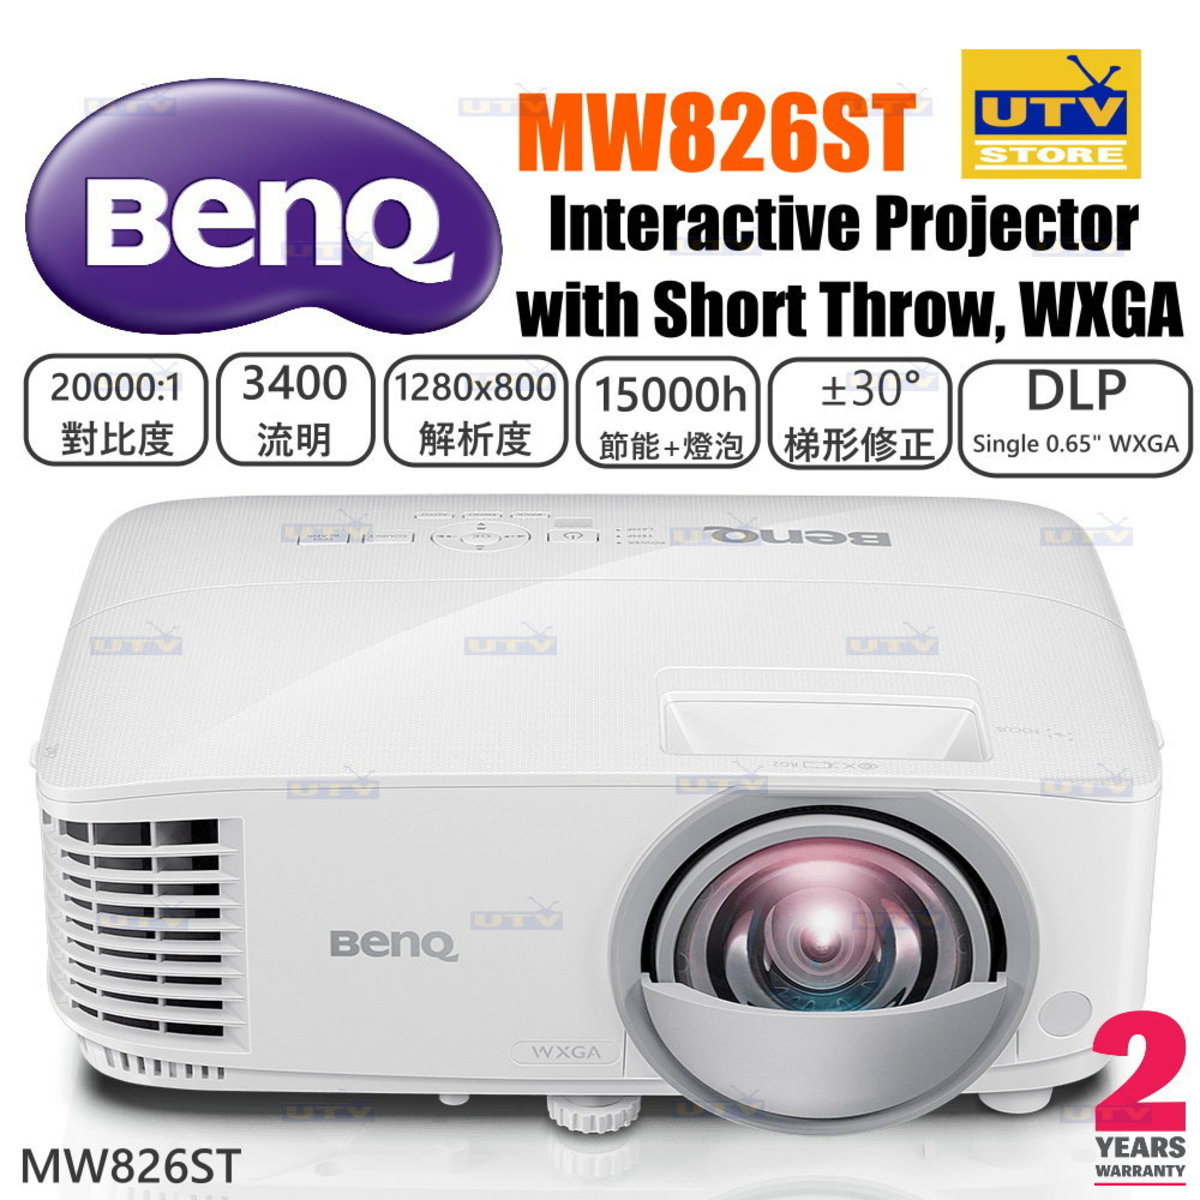 MW826ST Interactive Projector with Short Throw, WXGA